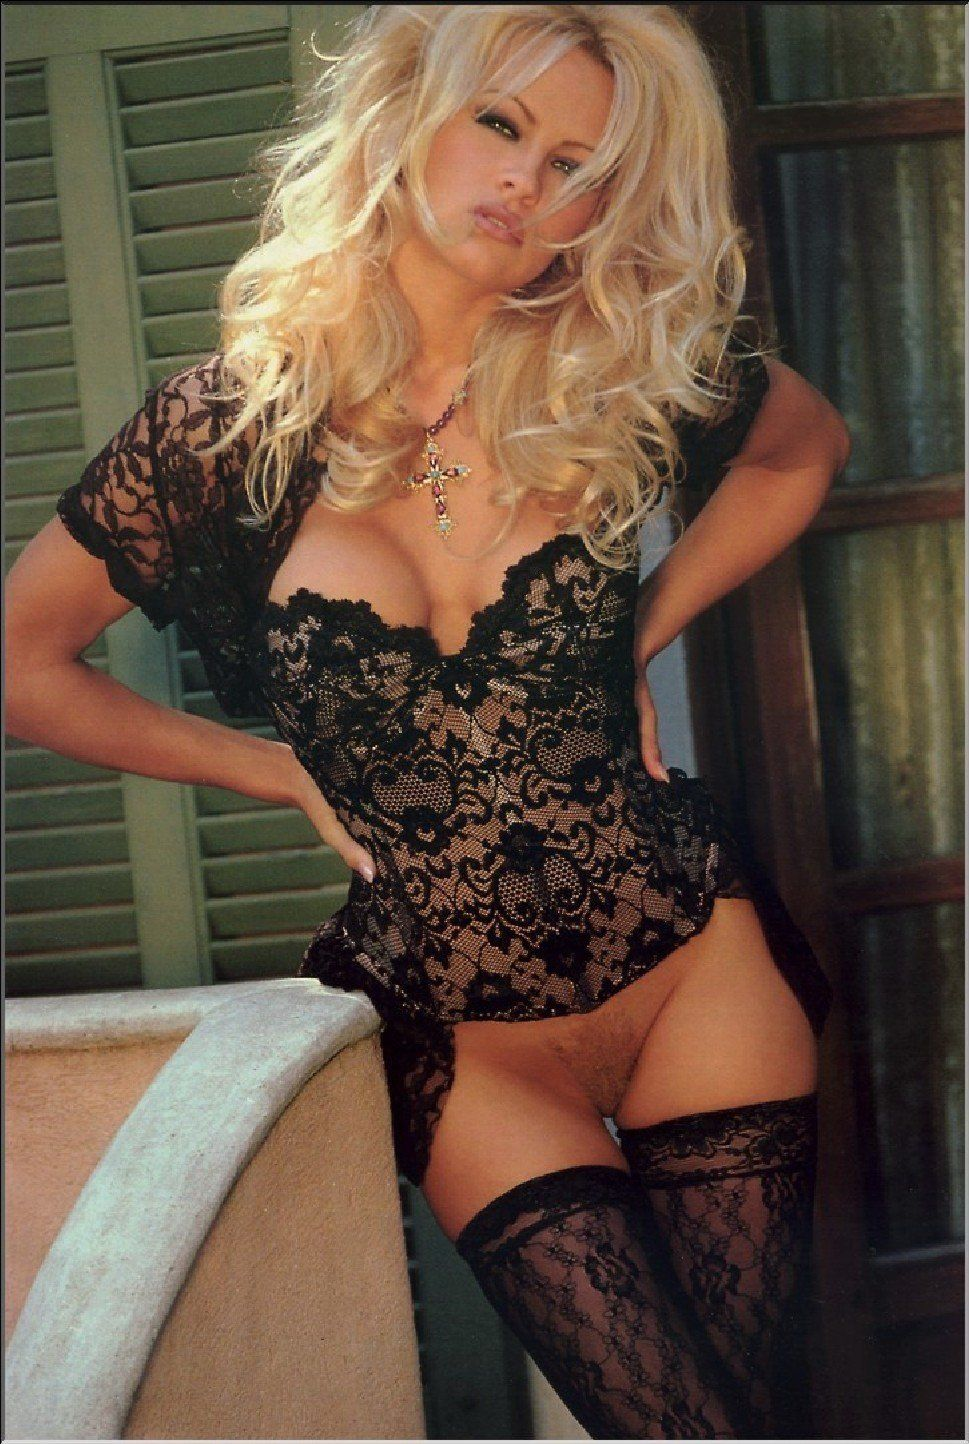 Pam Anderson Sex Tape Porn pamela anderson pussy up close - adult images. comments: 1